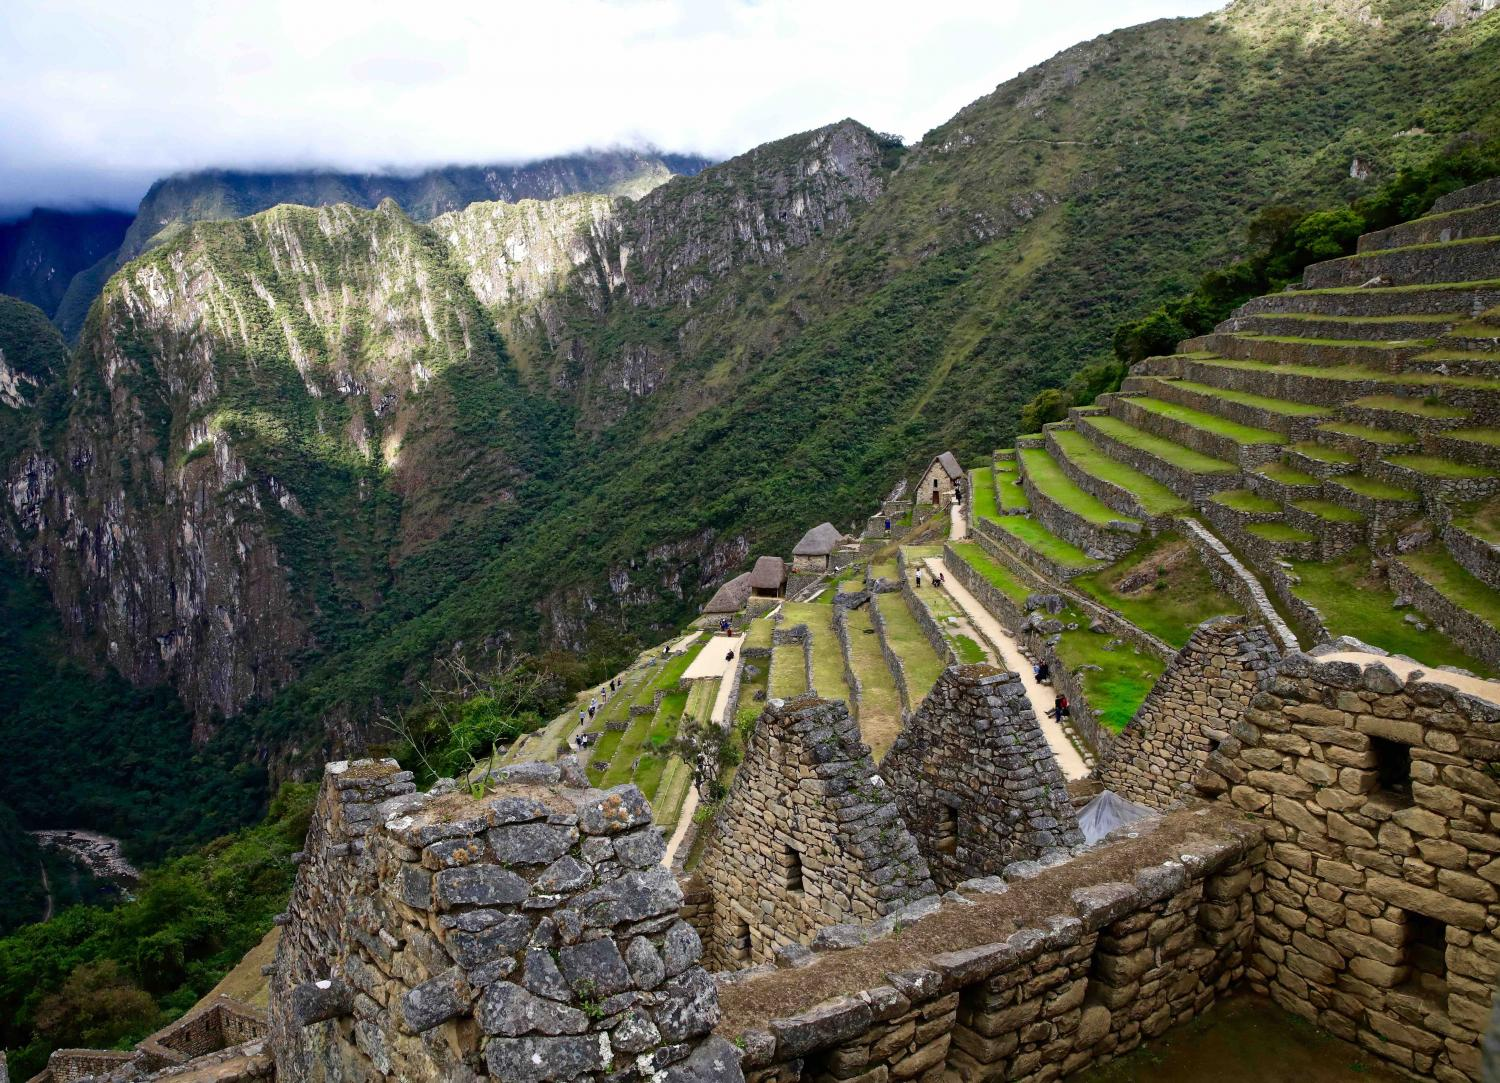 IMAGINE GIANTS ASCENDING AND DESCENDING THESE STEPS -THEY WOULD BE 10-12 FEET TALL MINIMUM! -MACHU PICCHU